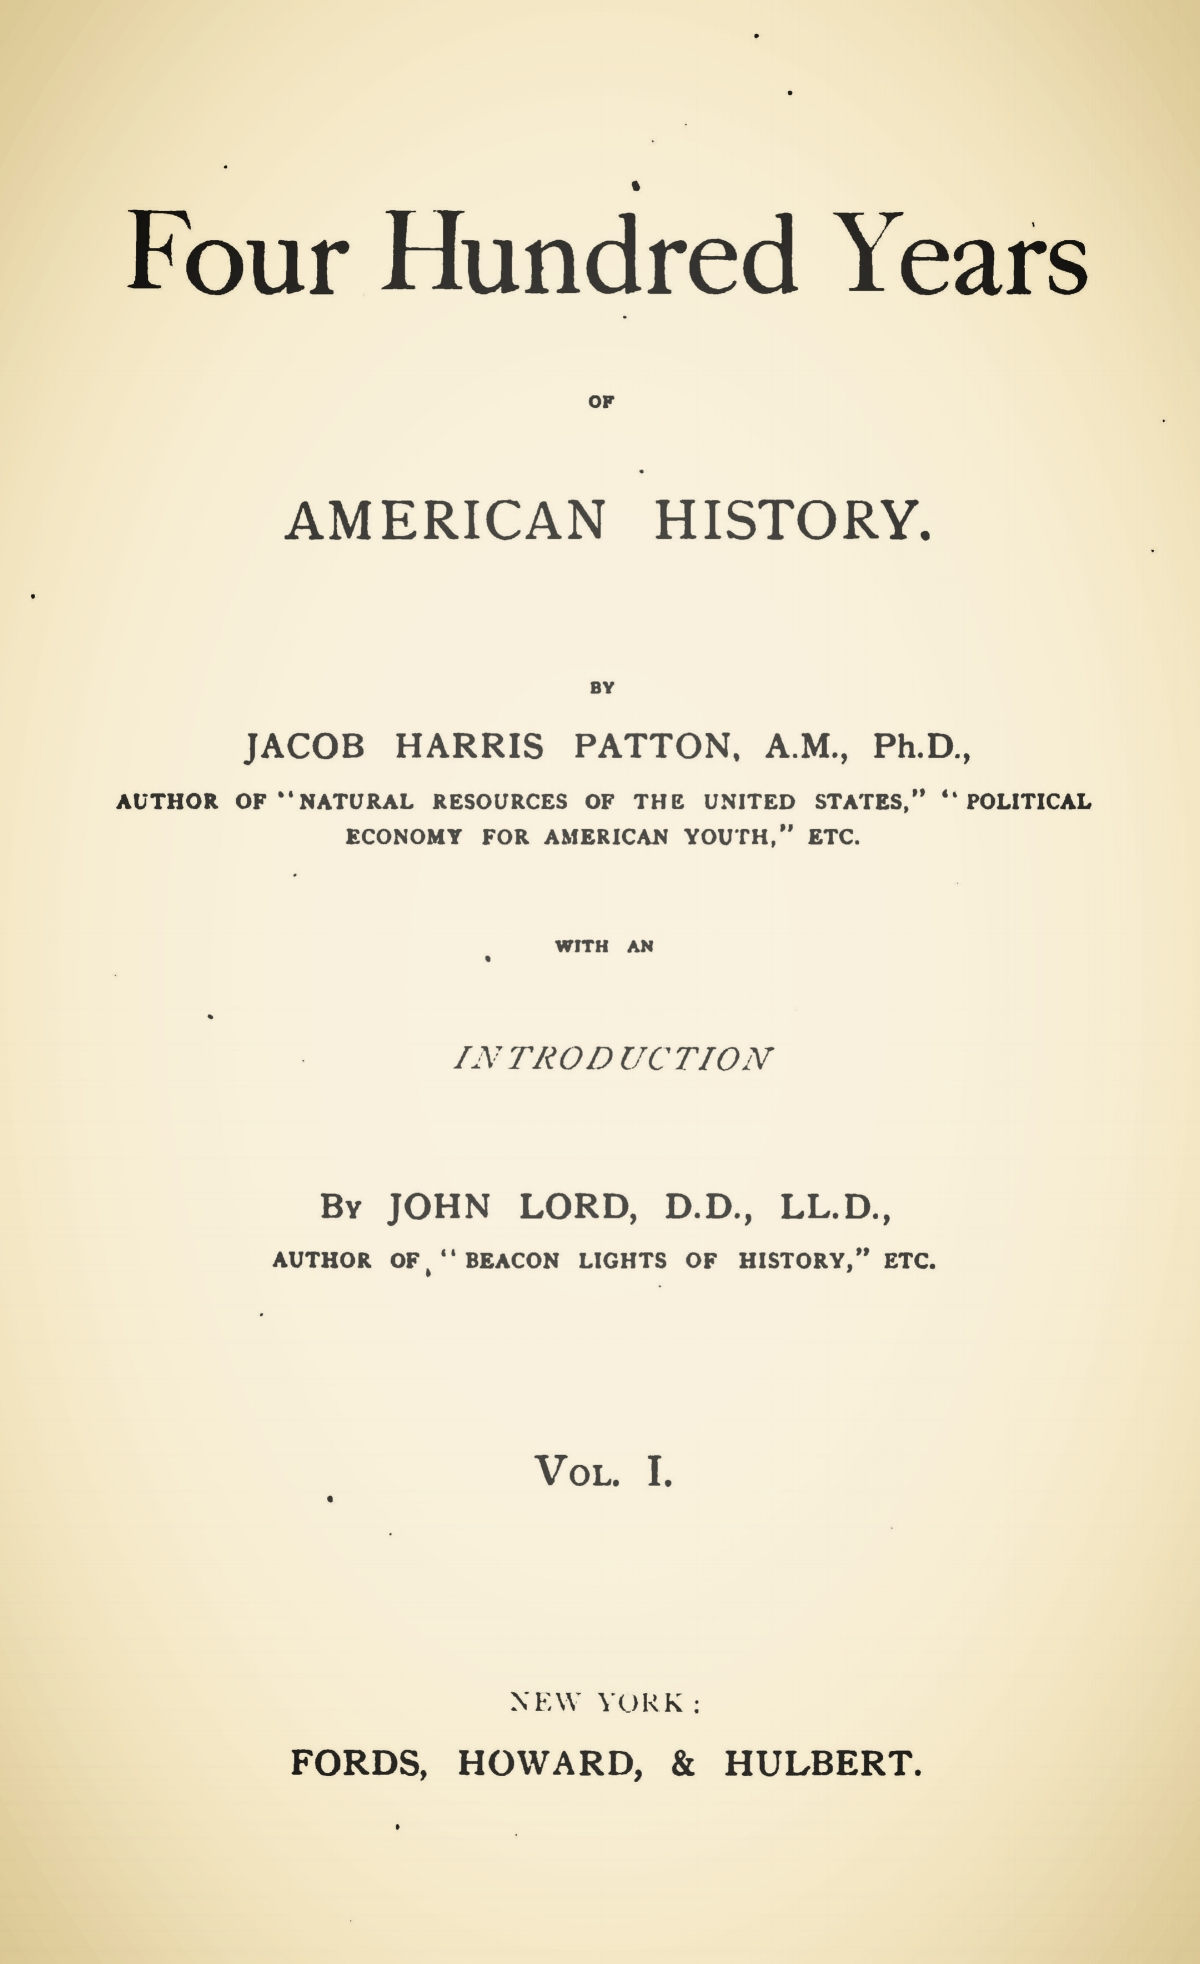 Patton, Jacob Harris, Four Hundred Years of American History, Vol. 1 Title Page.jpg